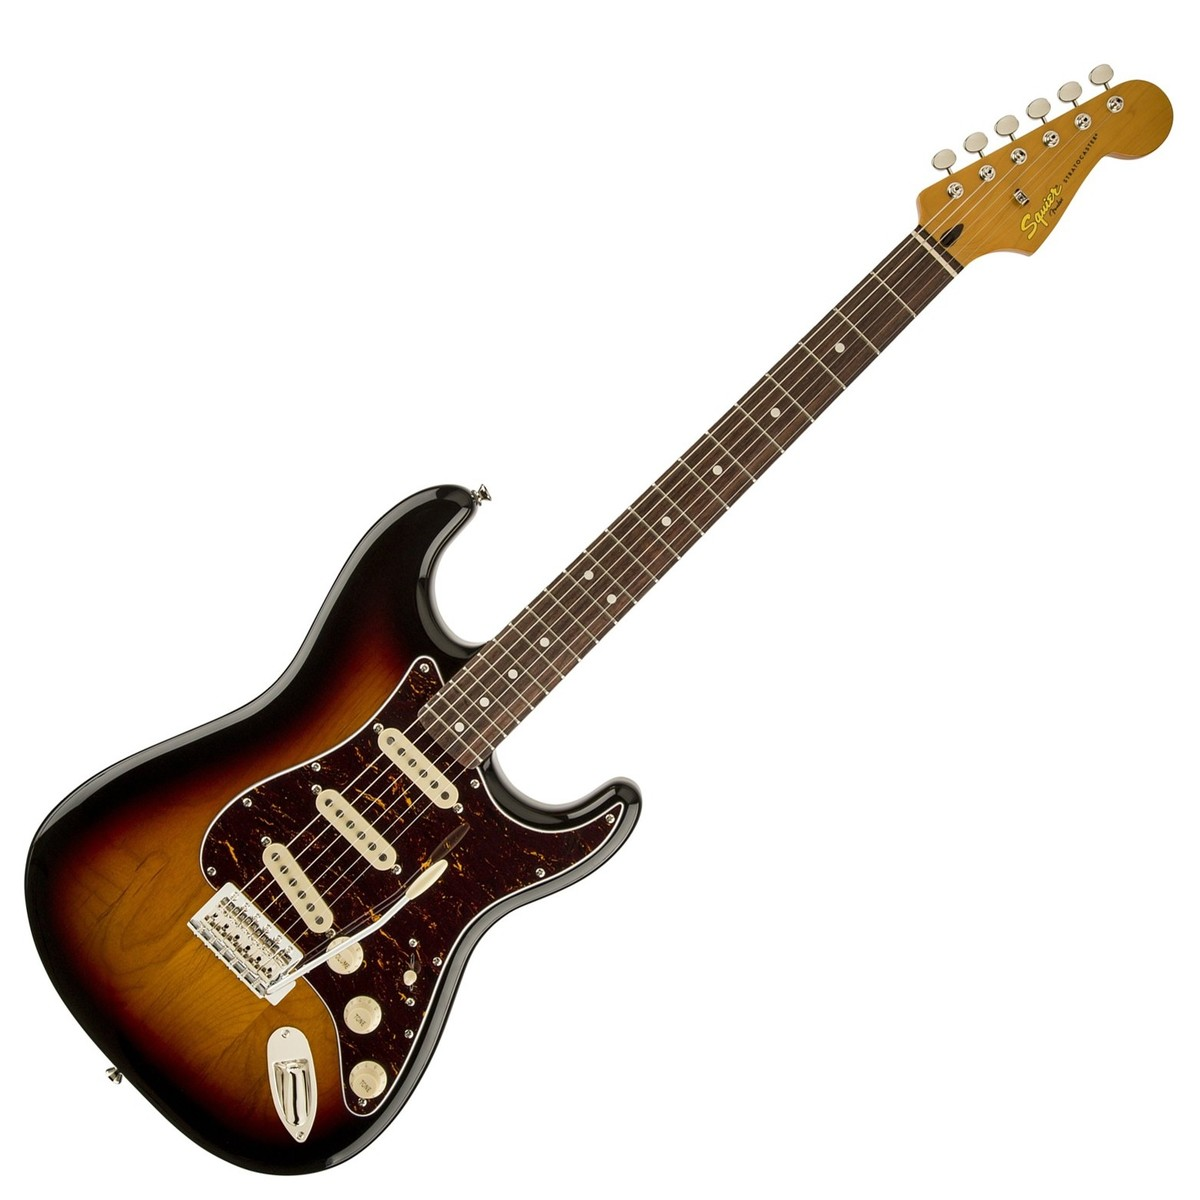 Squier Stratocaster dating